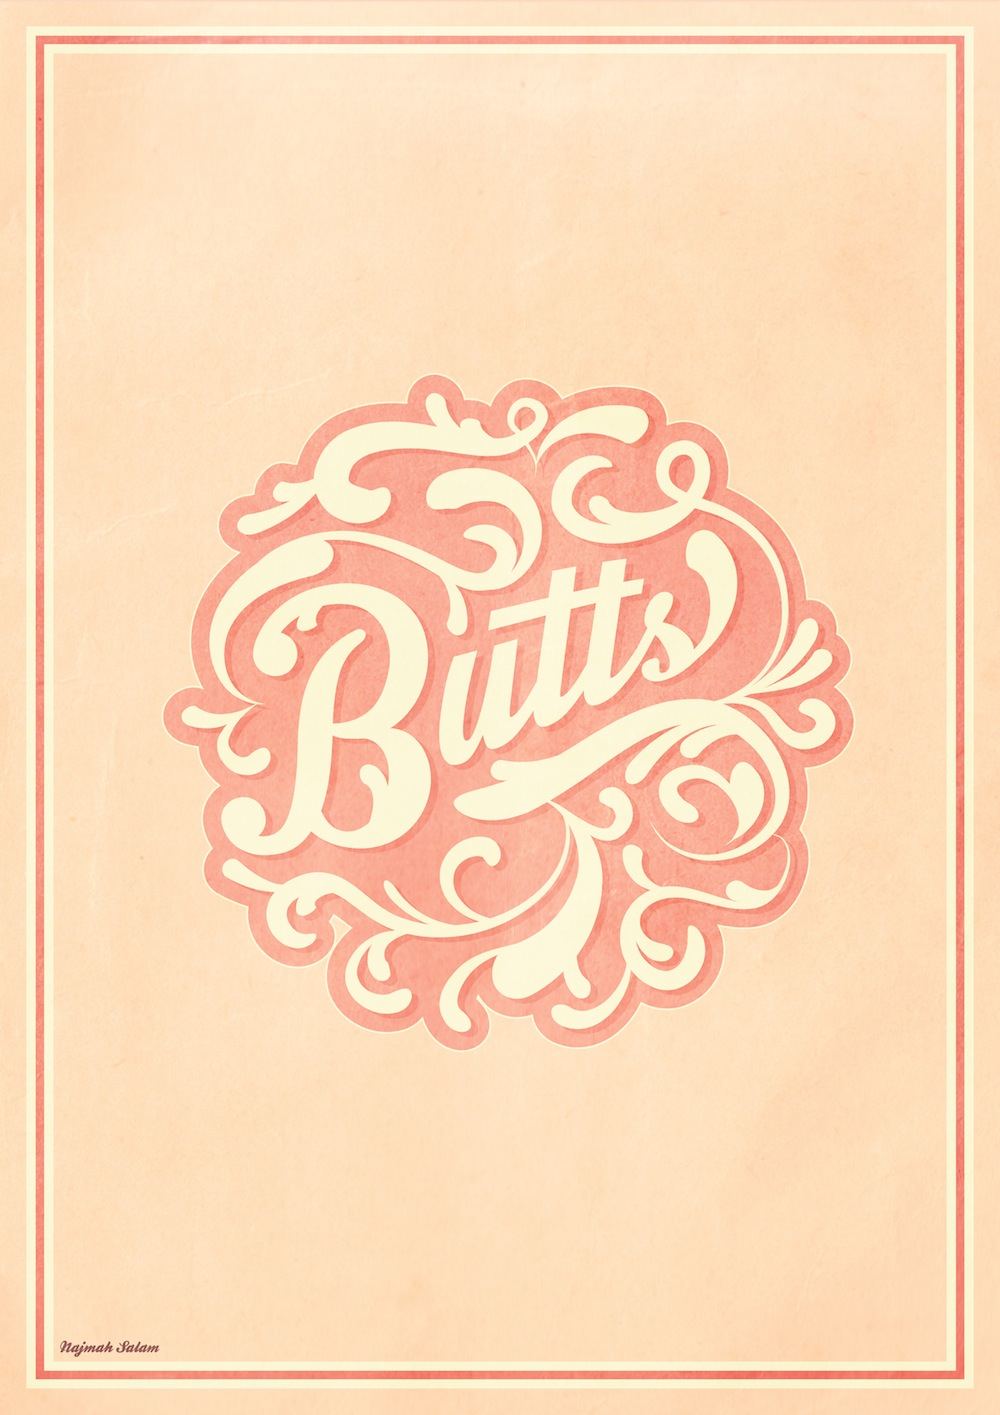 buttsflourish-03.jpg